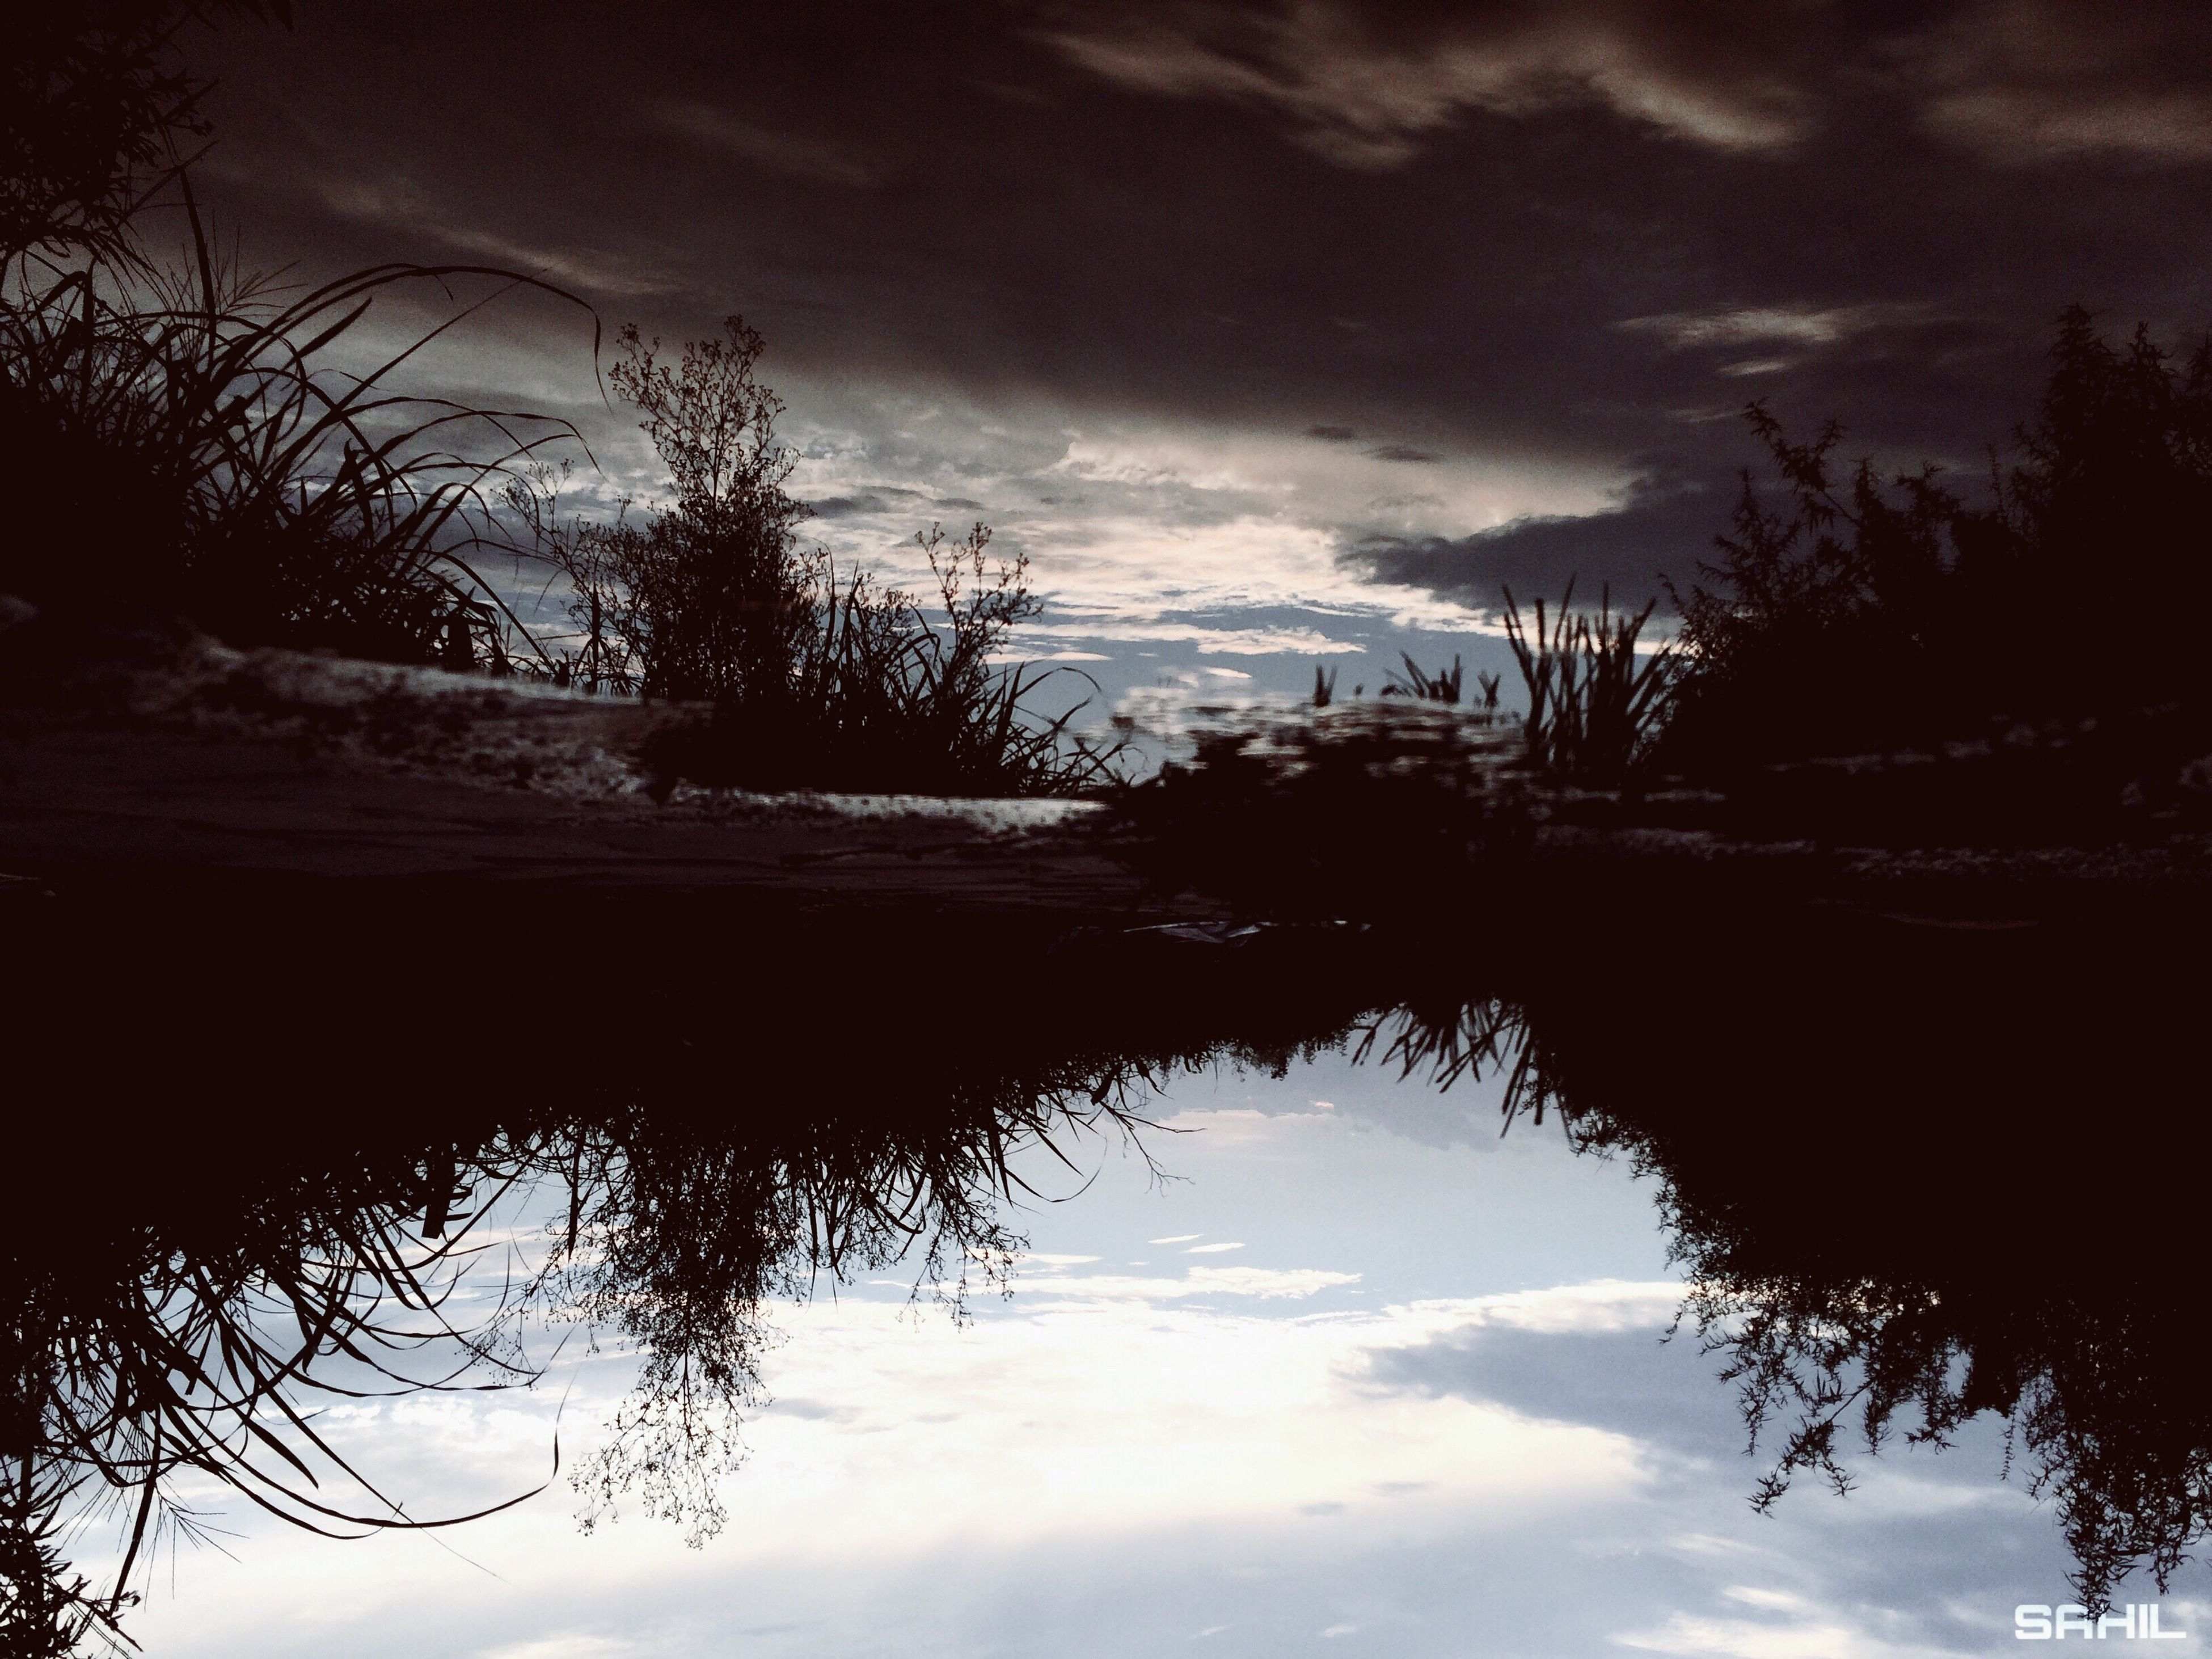 water, reflection, sky, waterfront, calm, tree, tranquil scene, lake, tranquility, bare tree, cloud - sky, scenics, cloud, silhouette, standing water, branch, nature, beauty in nature, outdoors, cloudy, water surface, non-urban scene, majestic, reflected, no people, outline